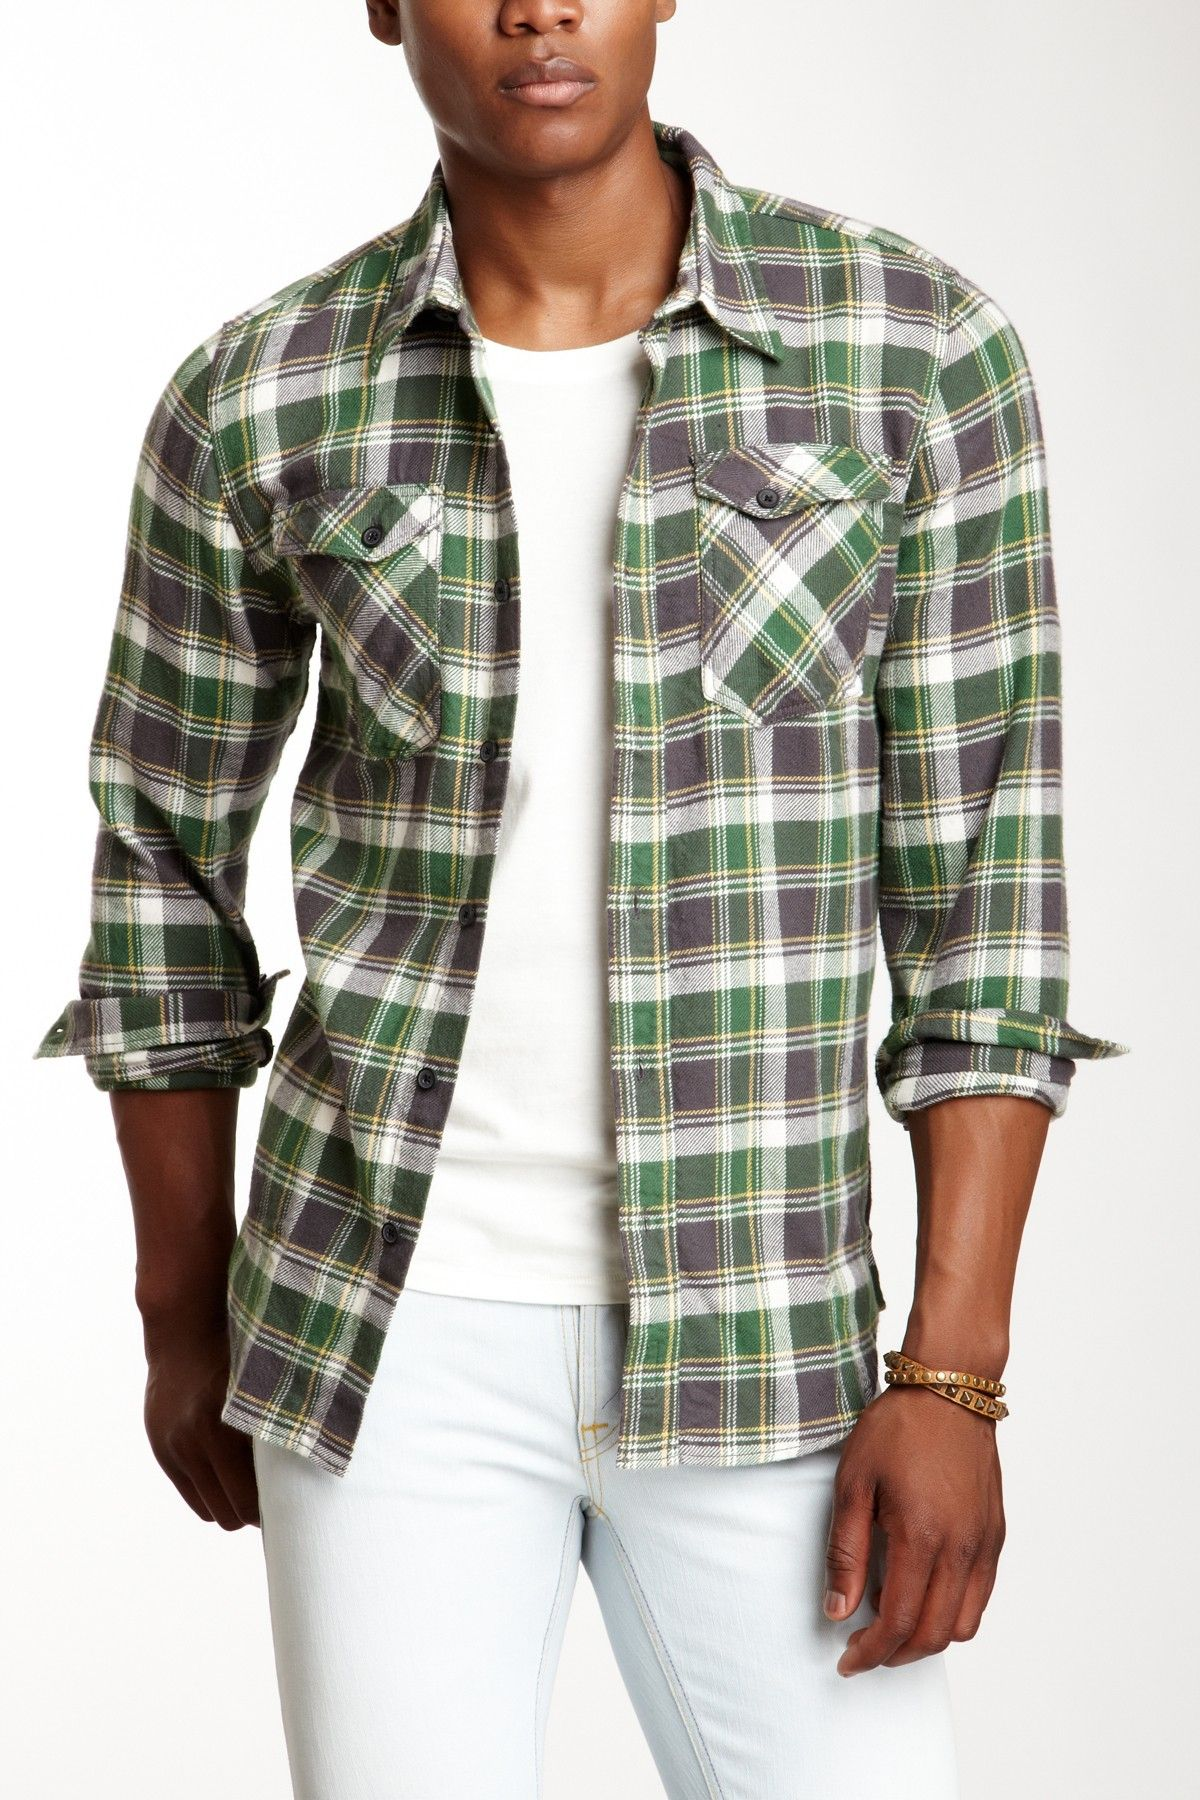 Flannel over shirt  Nudie Jeans Plaid Flannel Shirt on HauteLook  Mens Fashion For